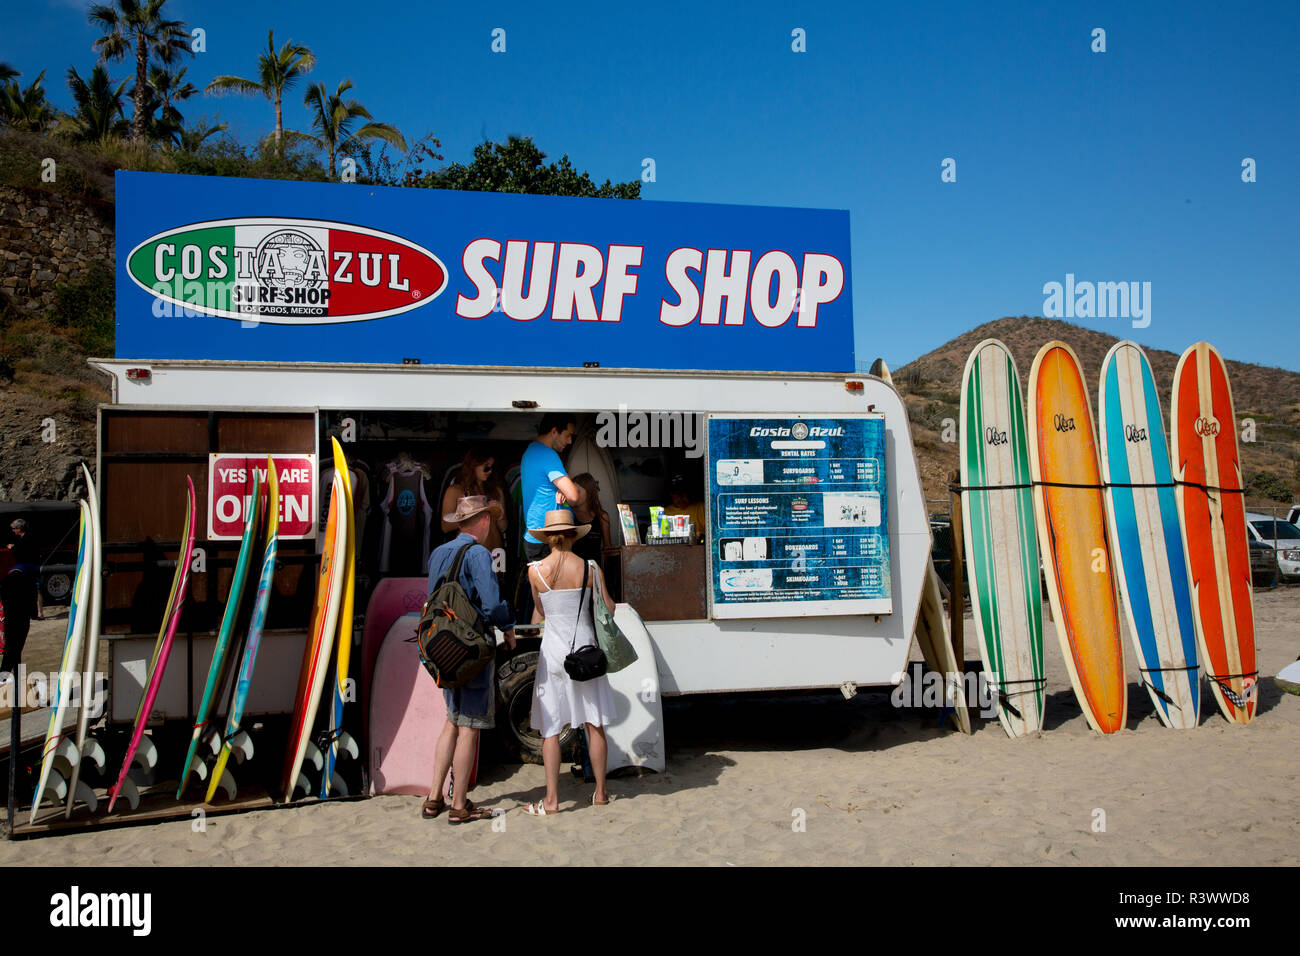 Surf Shop California Stock Photos & Surf Shop California